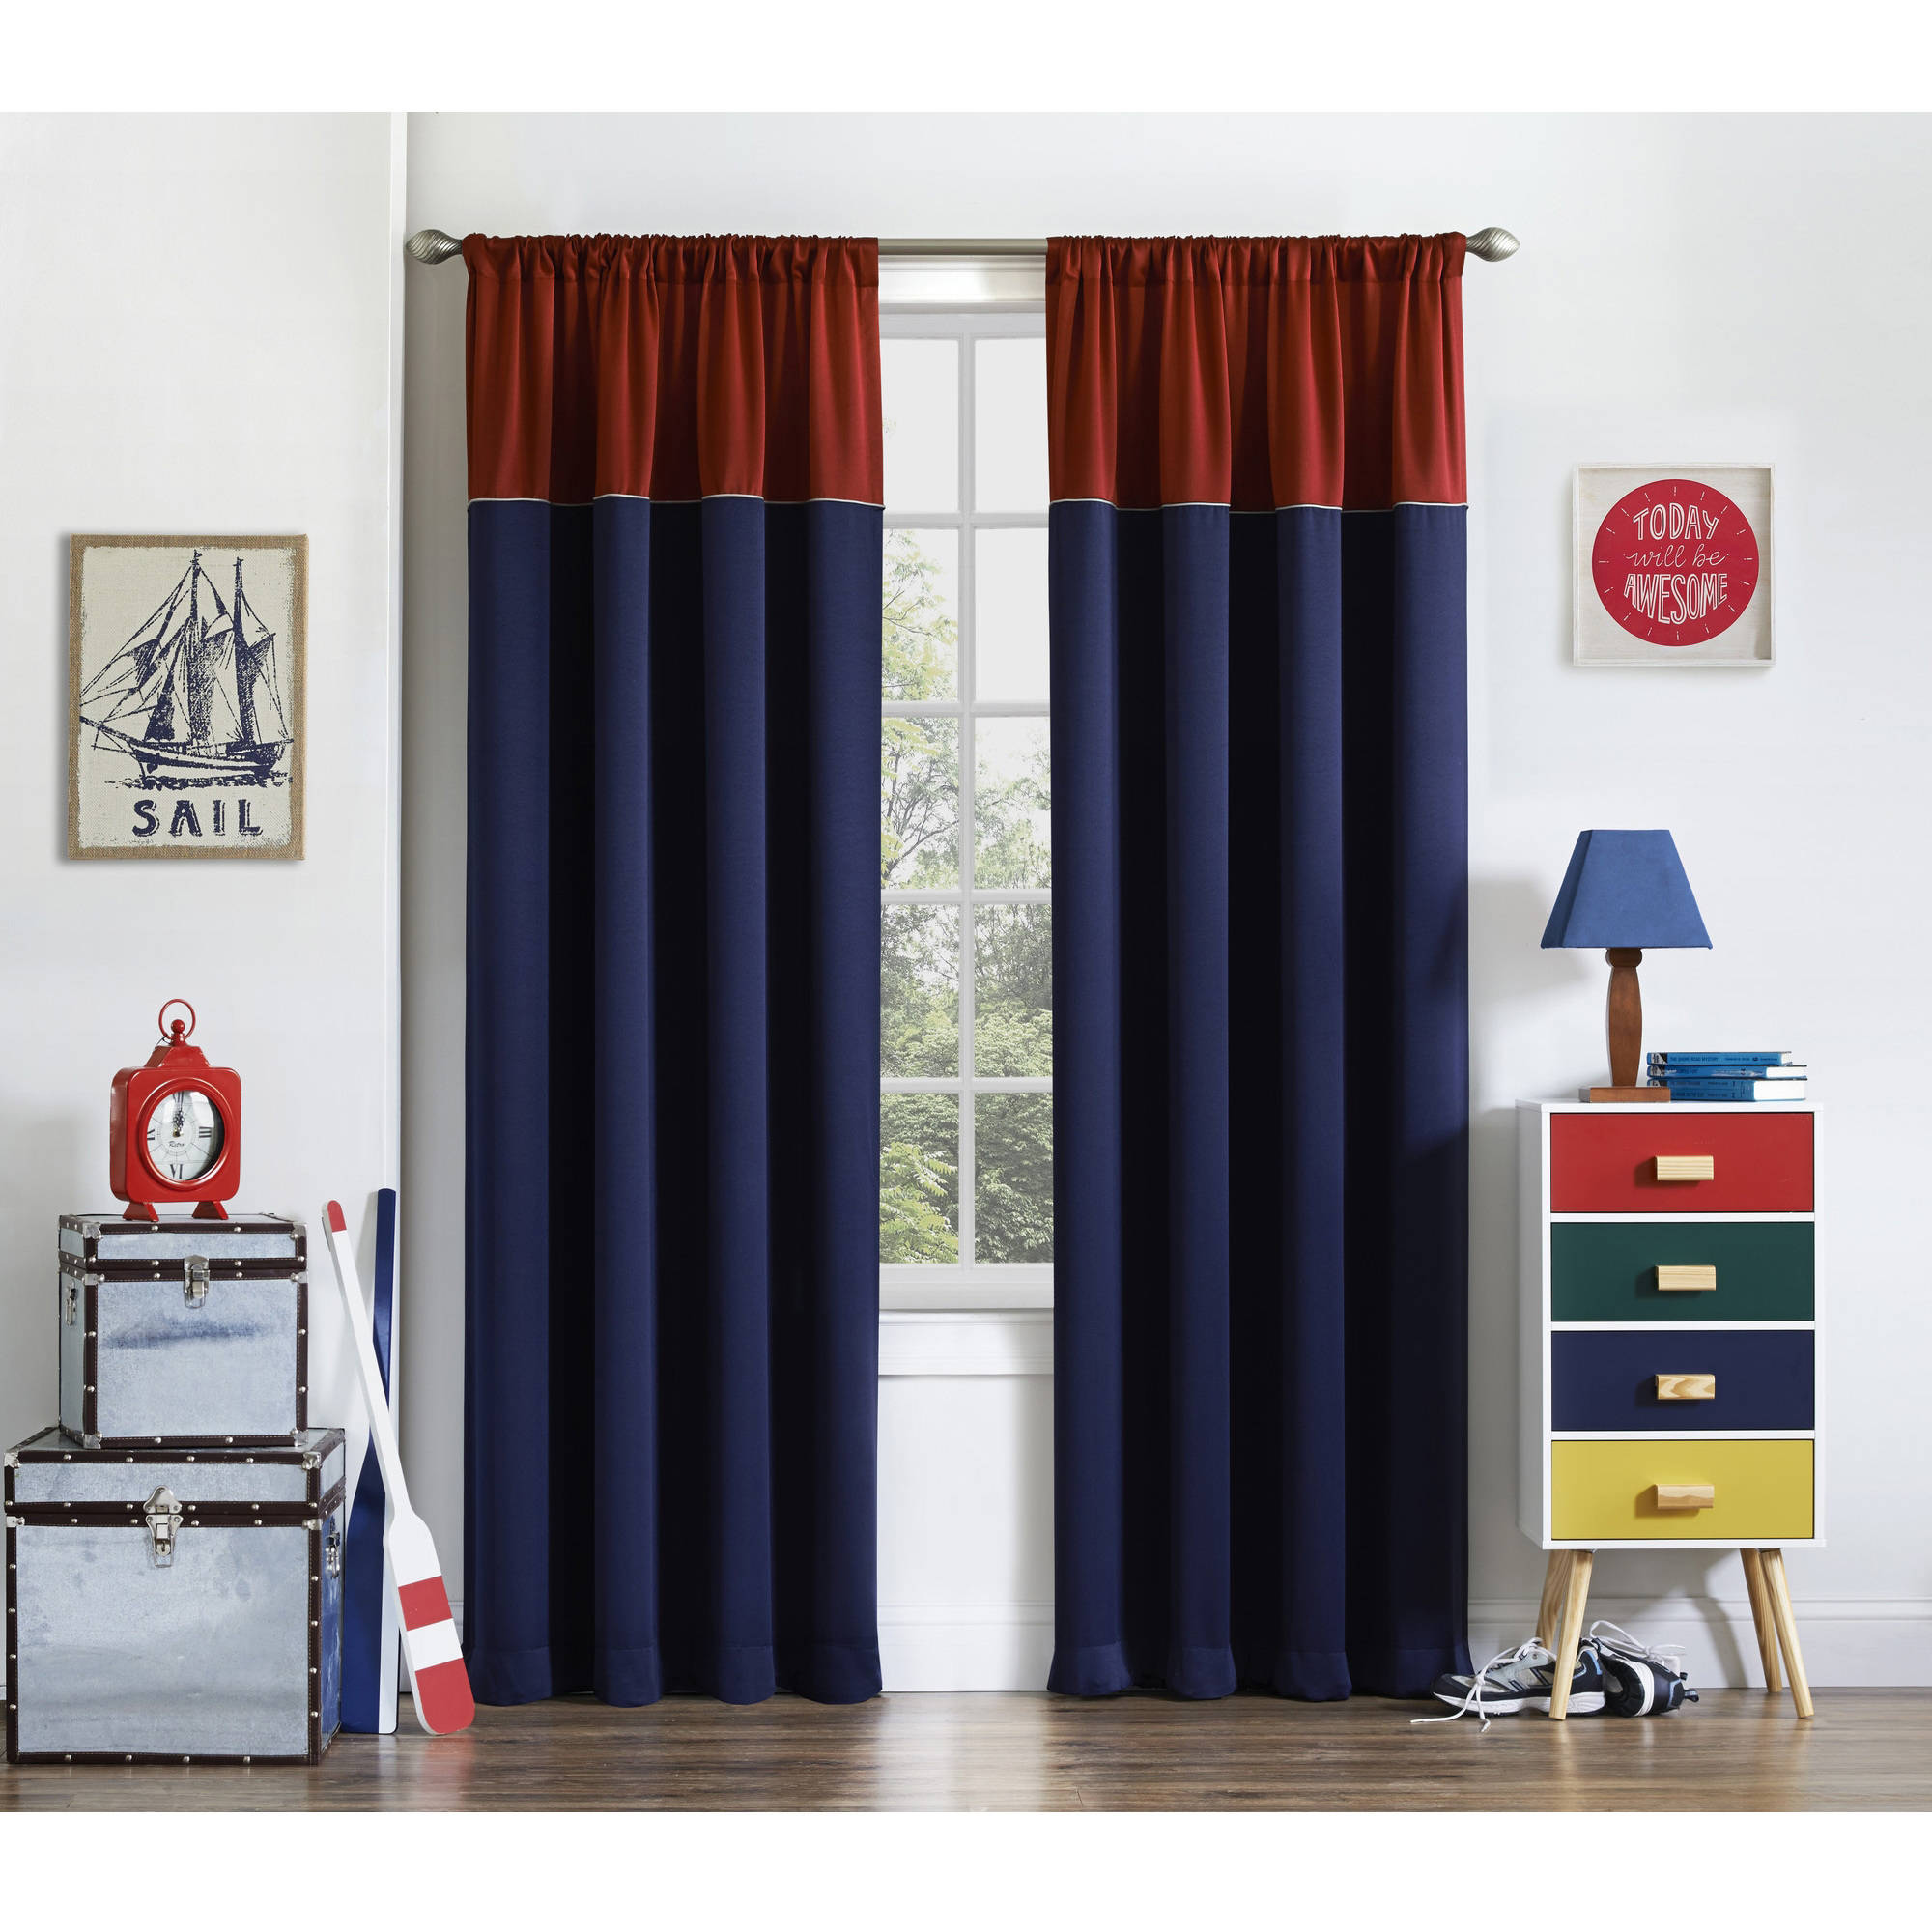 Bedroom Curtains Room Darkening Eclipse Luna Room Darkening Kids Bedroom Curtain Walmart